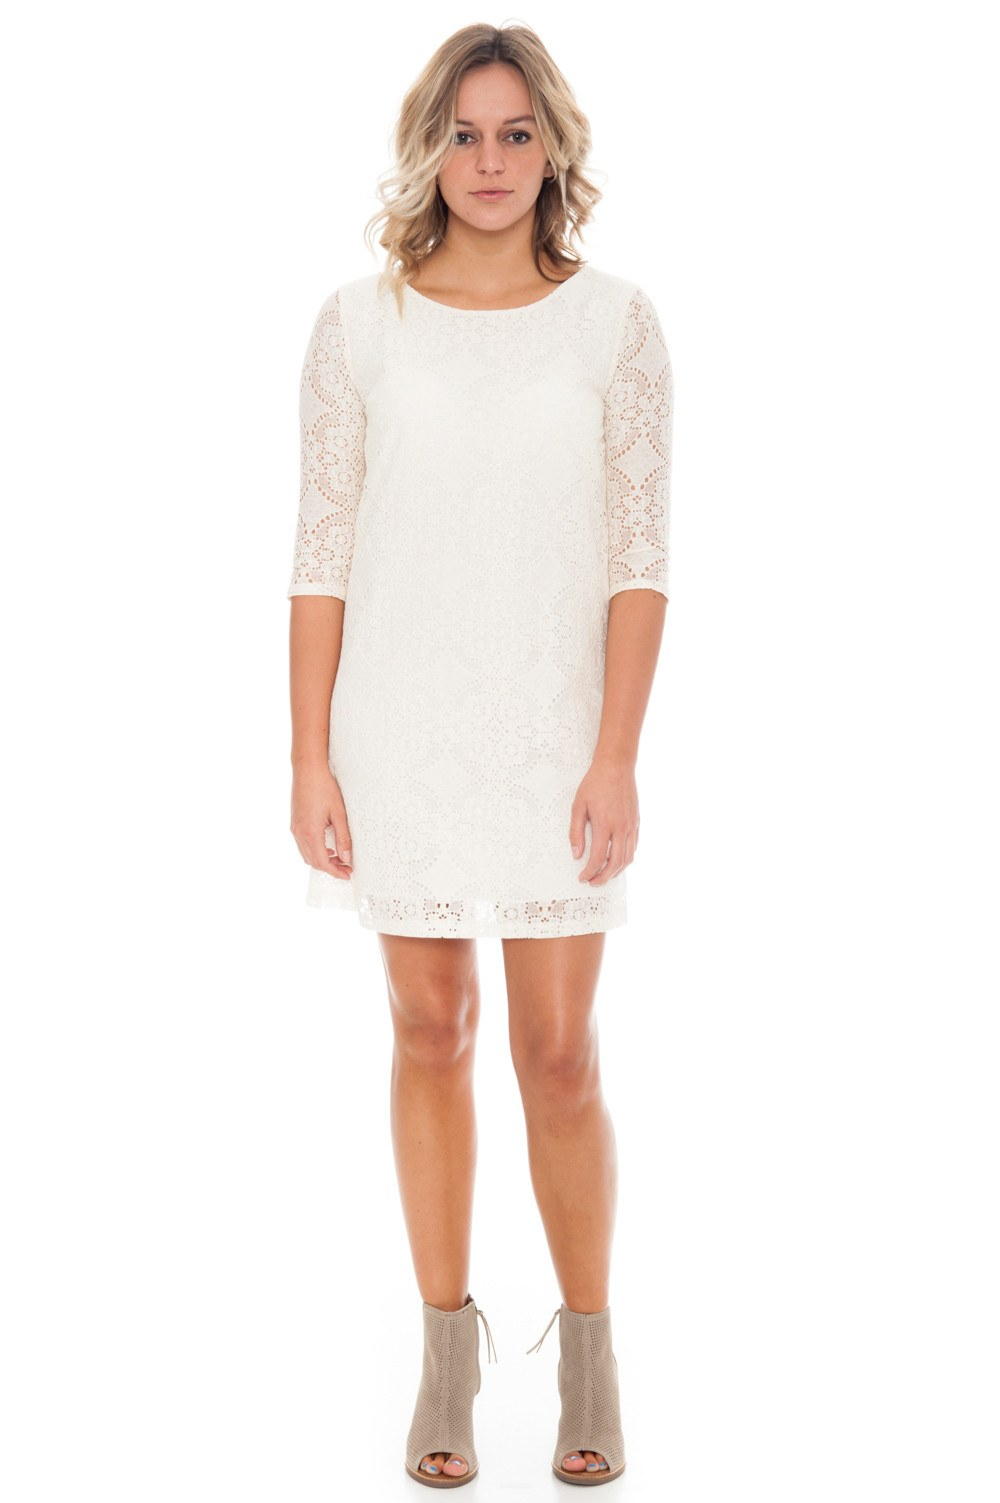 Dress - Shift Lace - 2